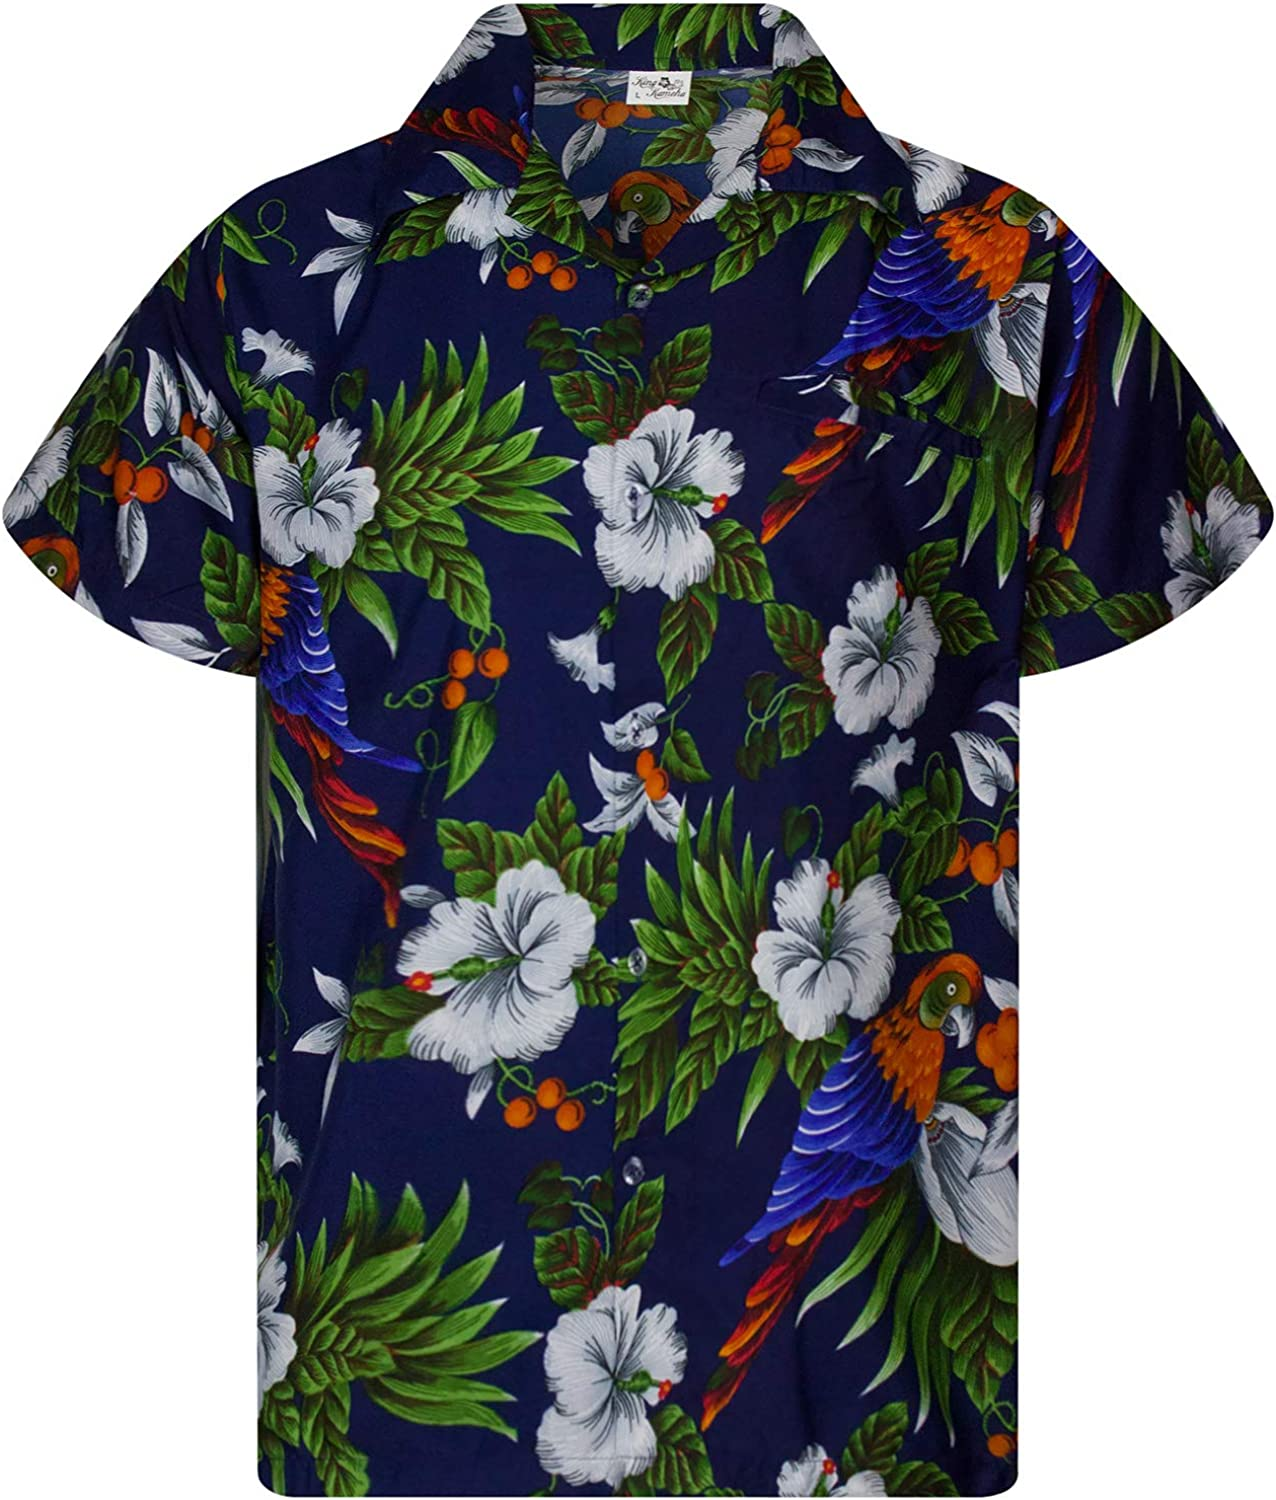 KING KAMEHA Funky Casual Hawaiian Shirt for Kids Boys and Girls Front Pocket Very Loud Shortsleeve Unisex Cherry Parrot Print